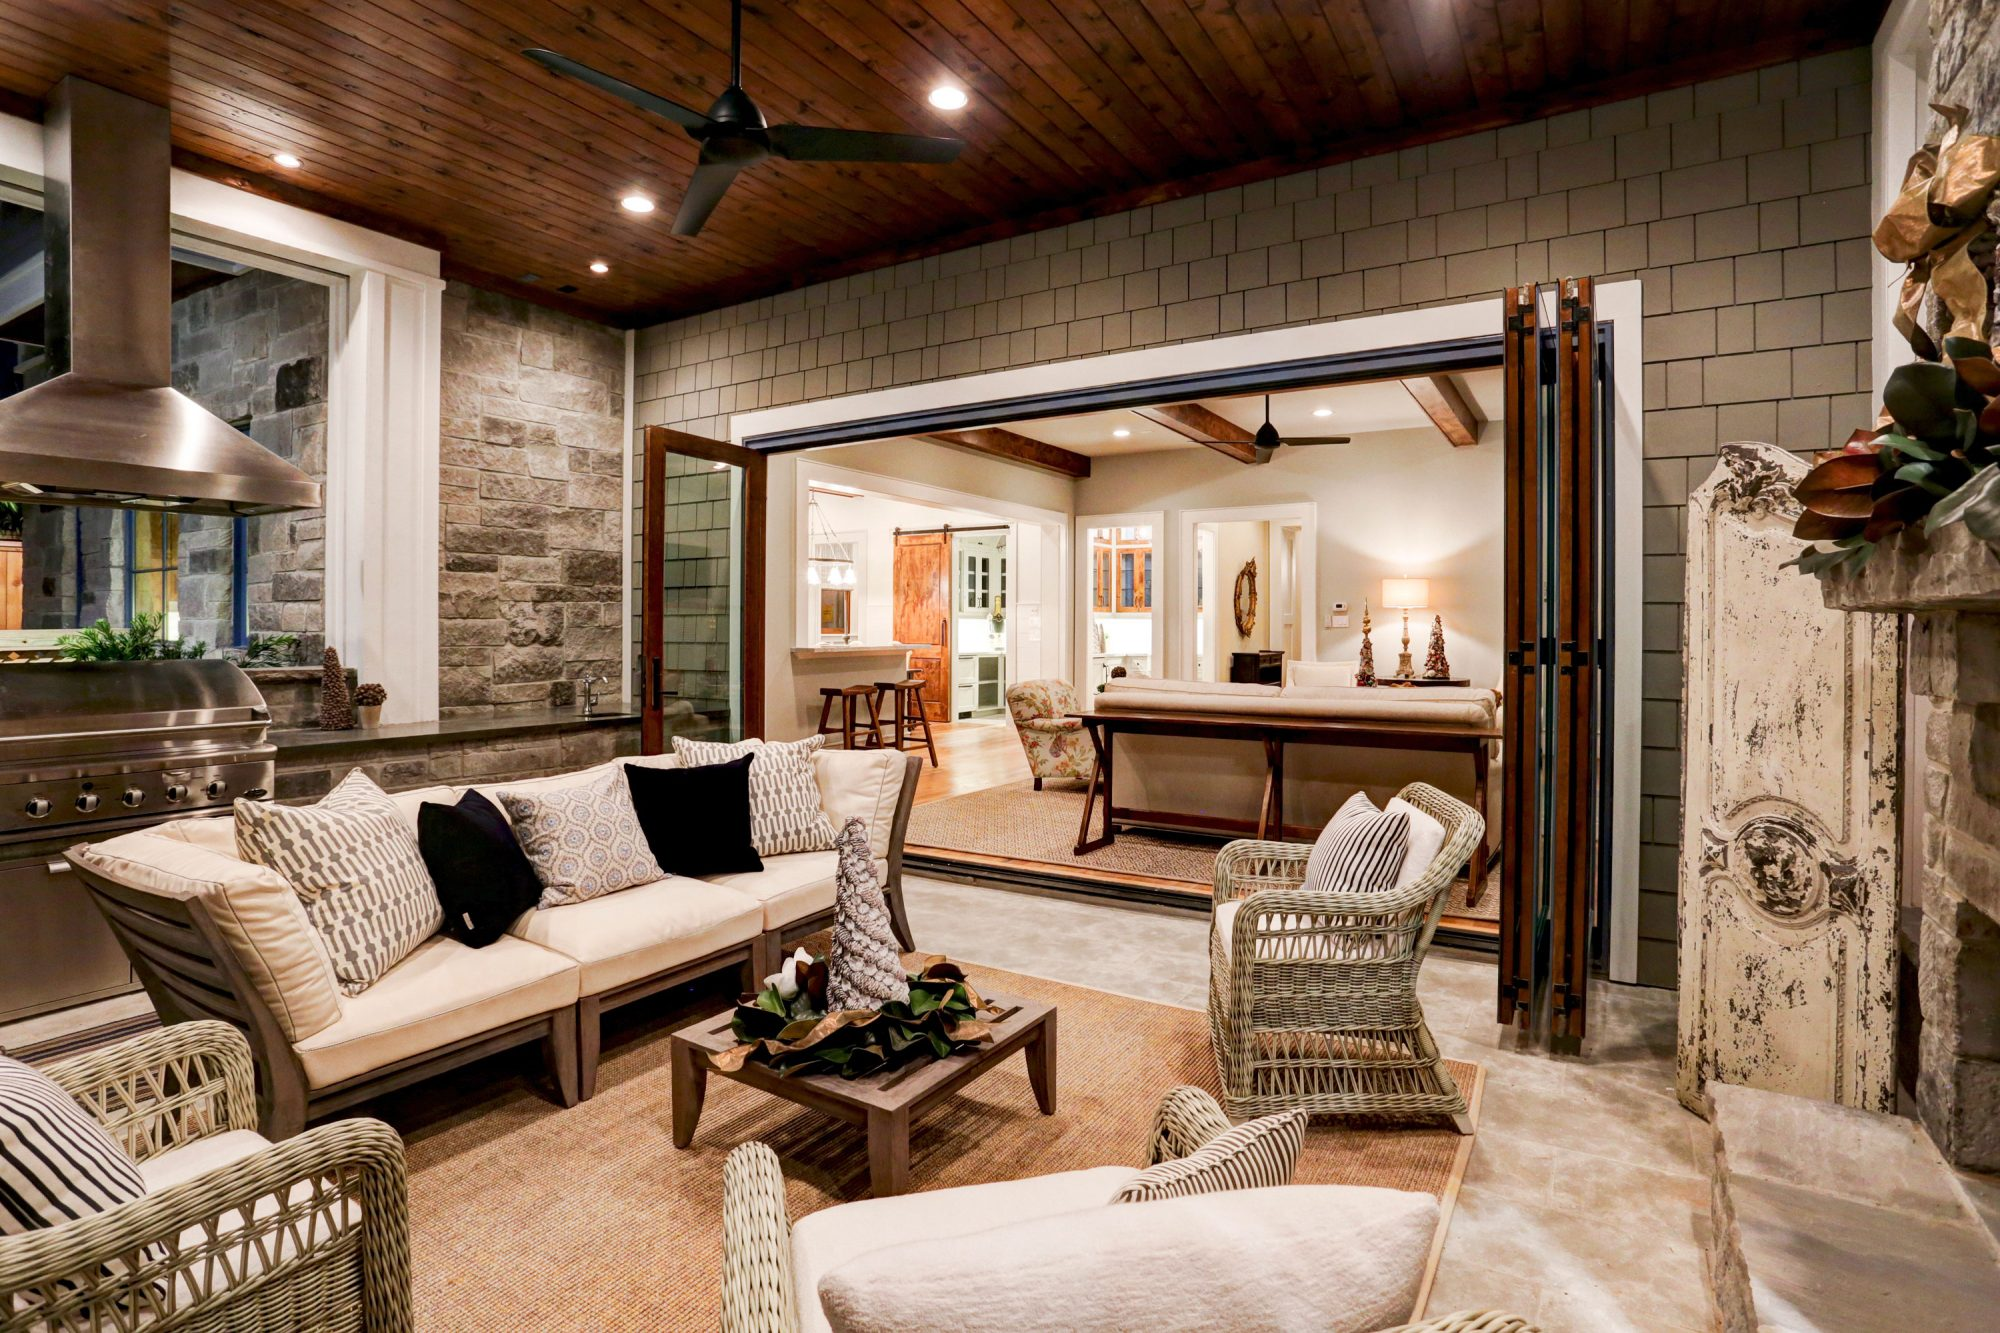 Stone Acorn Living Room and Porch